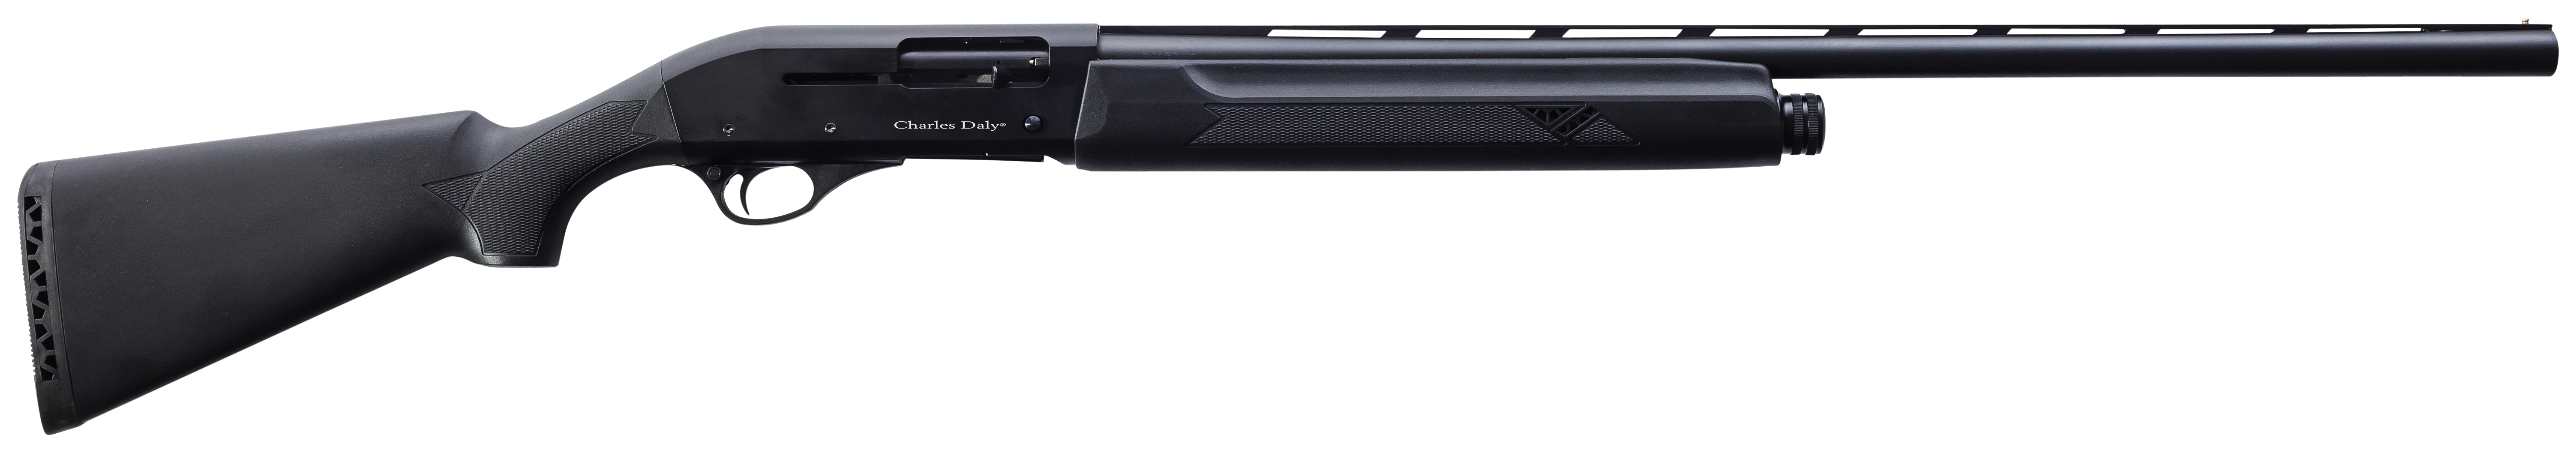 Charles Daly Chiappa 930095 600 Semi-Automatic 20 Gauge 26